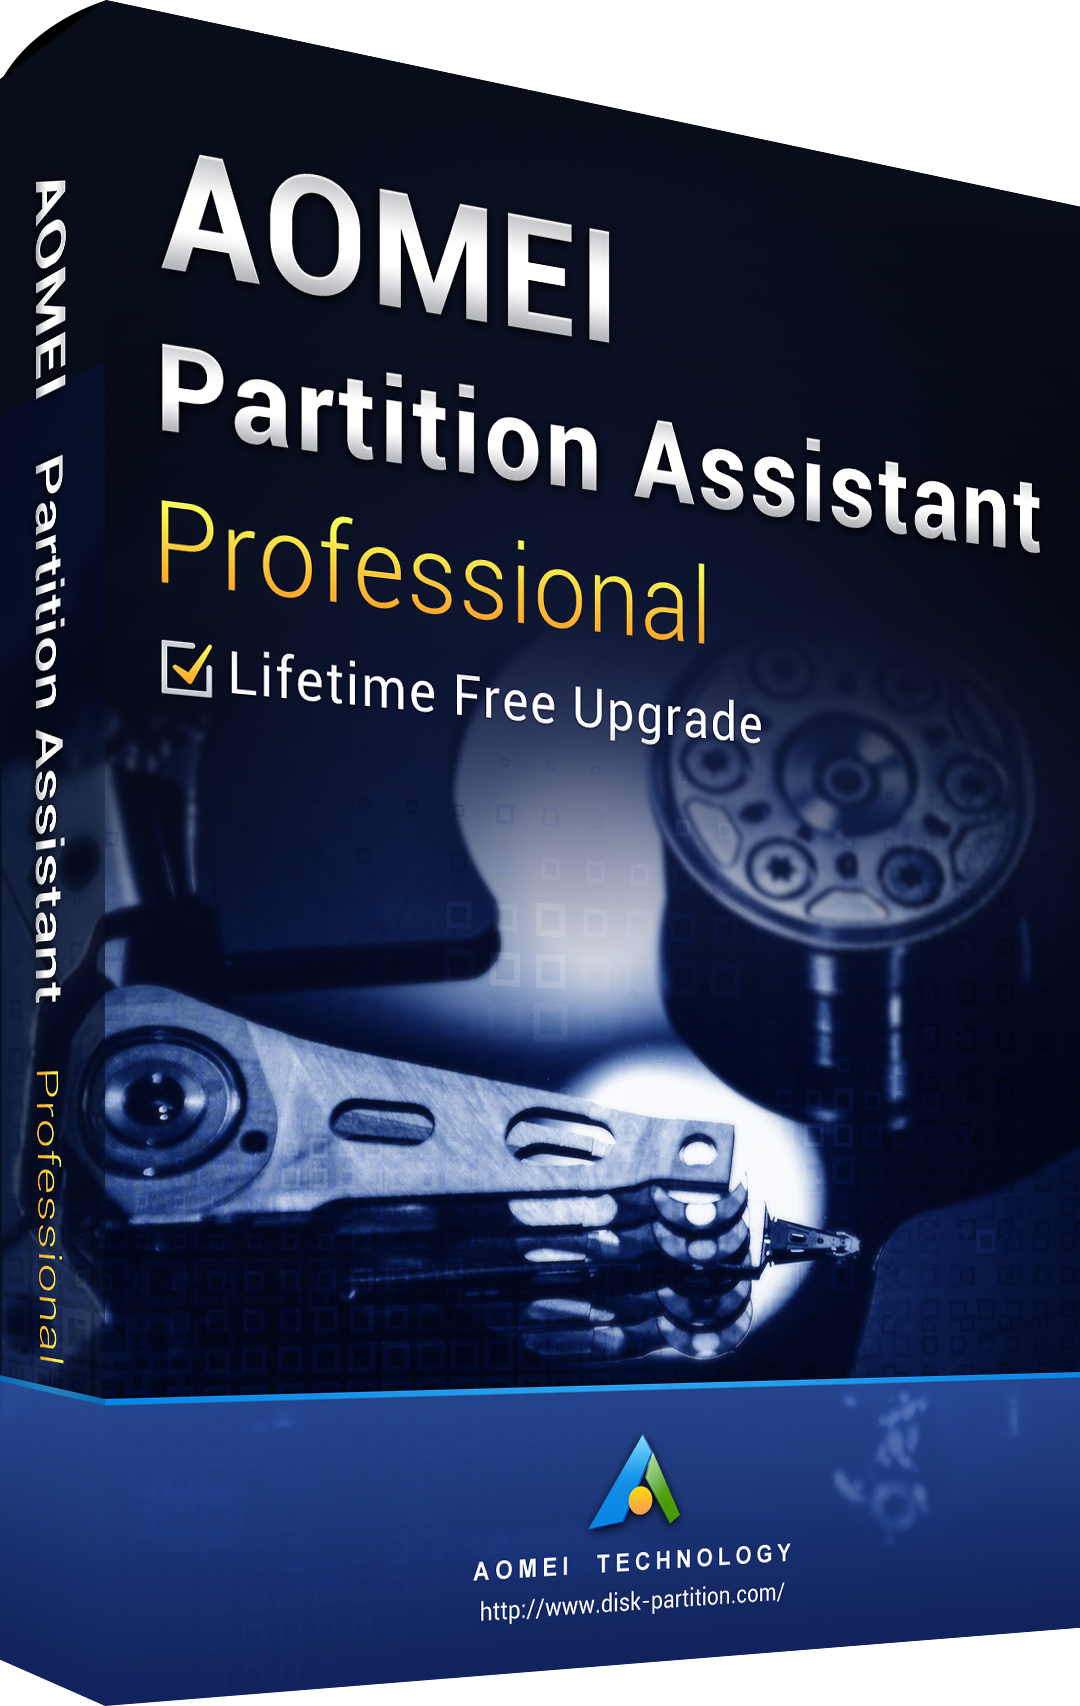 AOMEI Partition Assistant Professional + Free Lifetime Upgrades 8.6 Eidtion Key Global